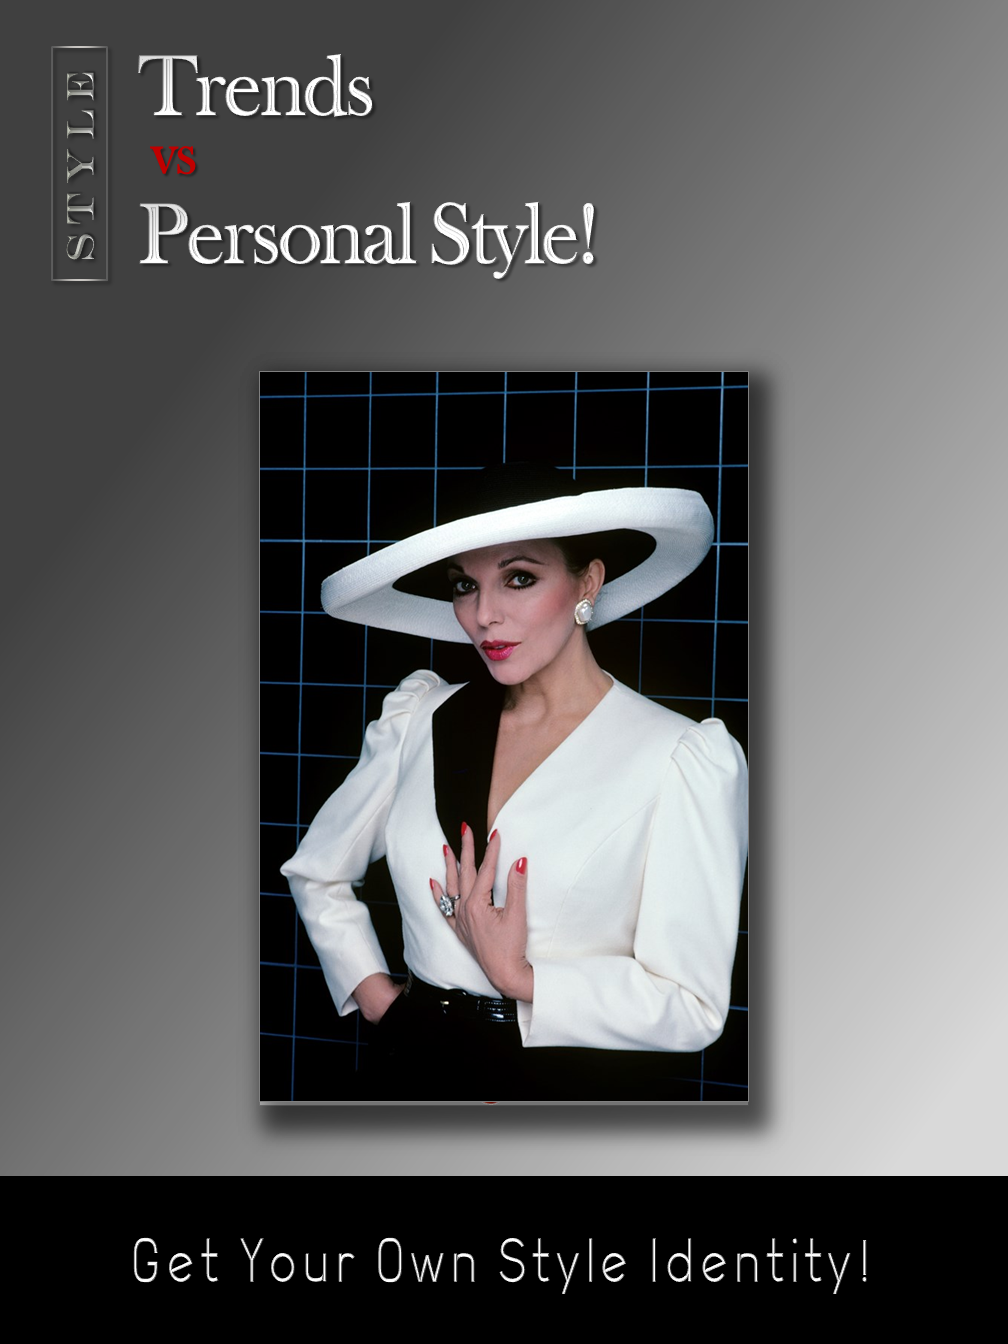 Trends & Personal Style